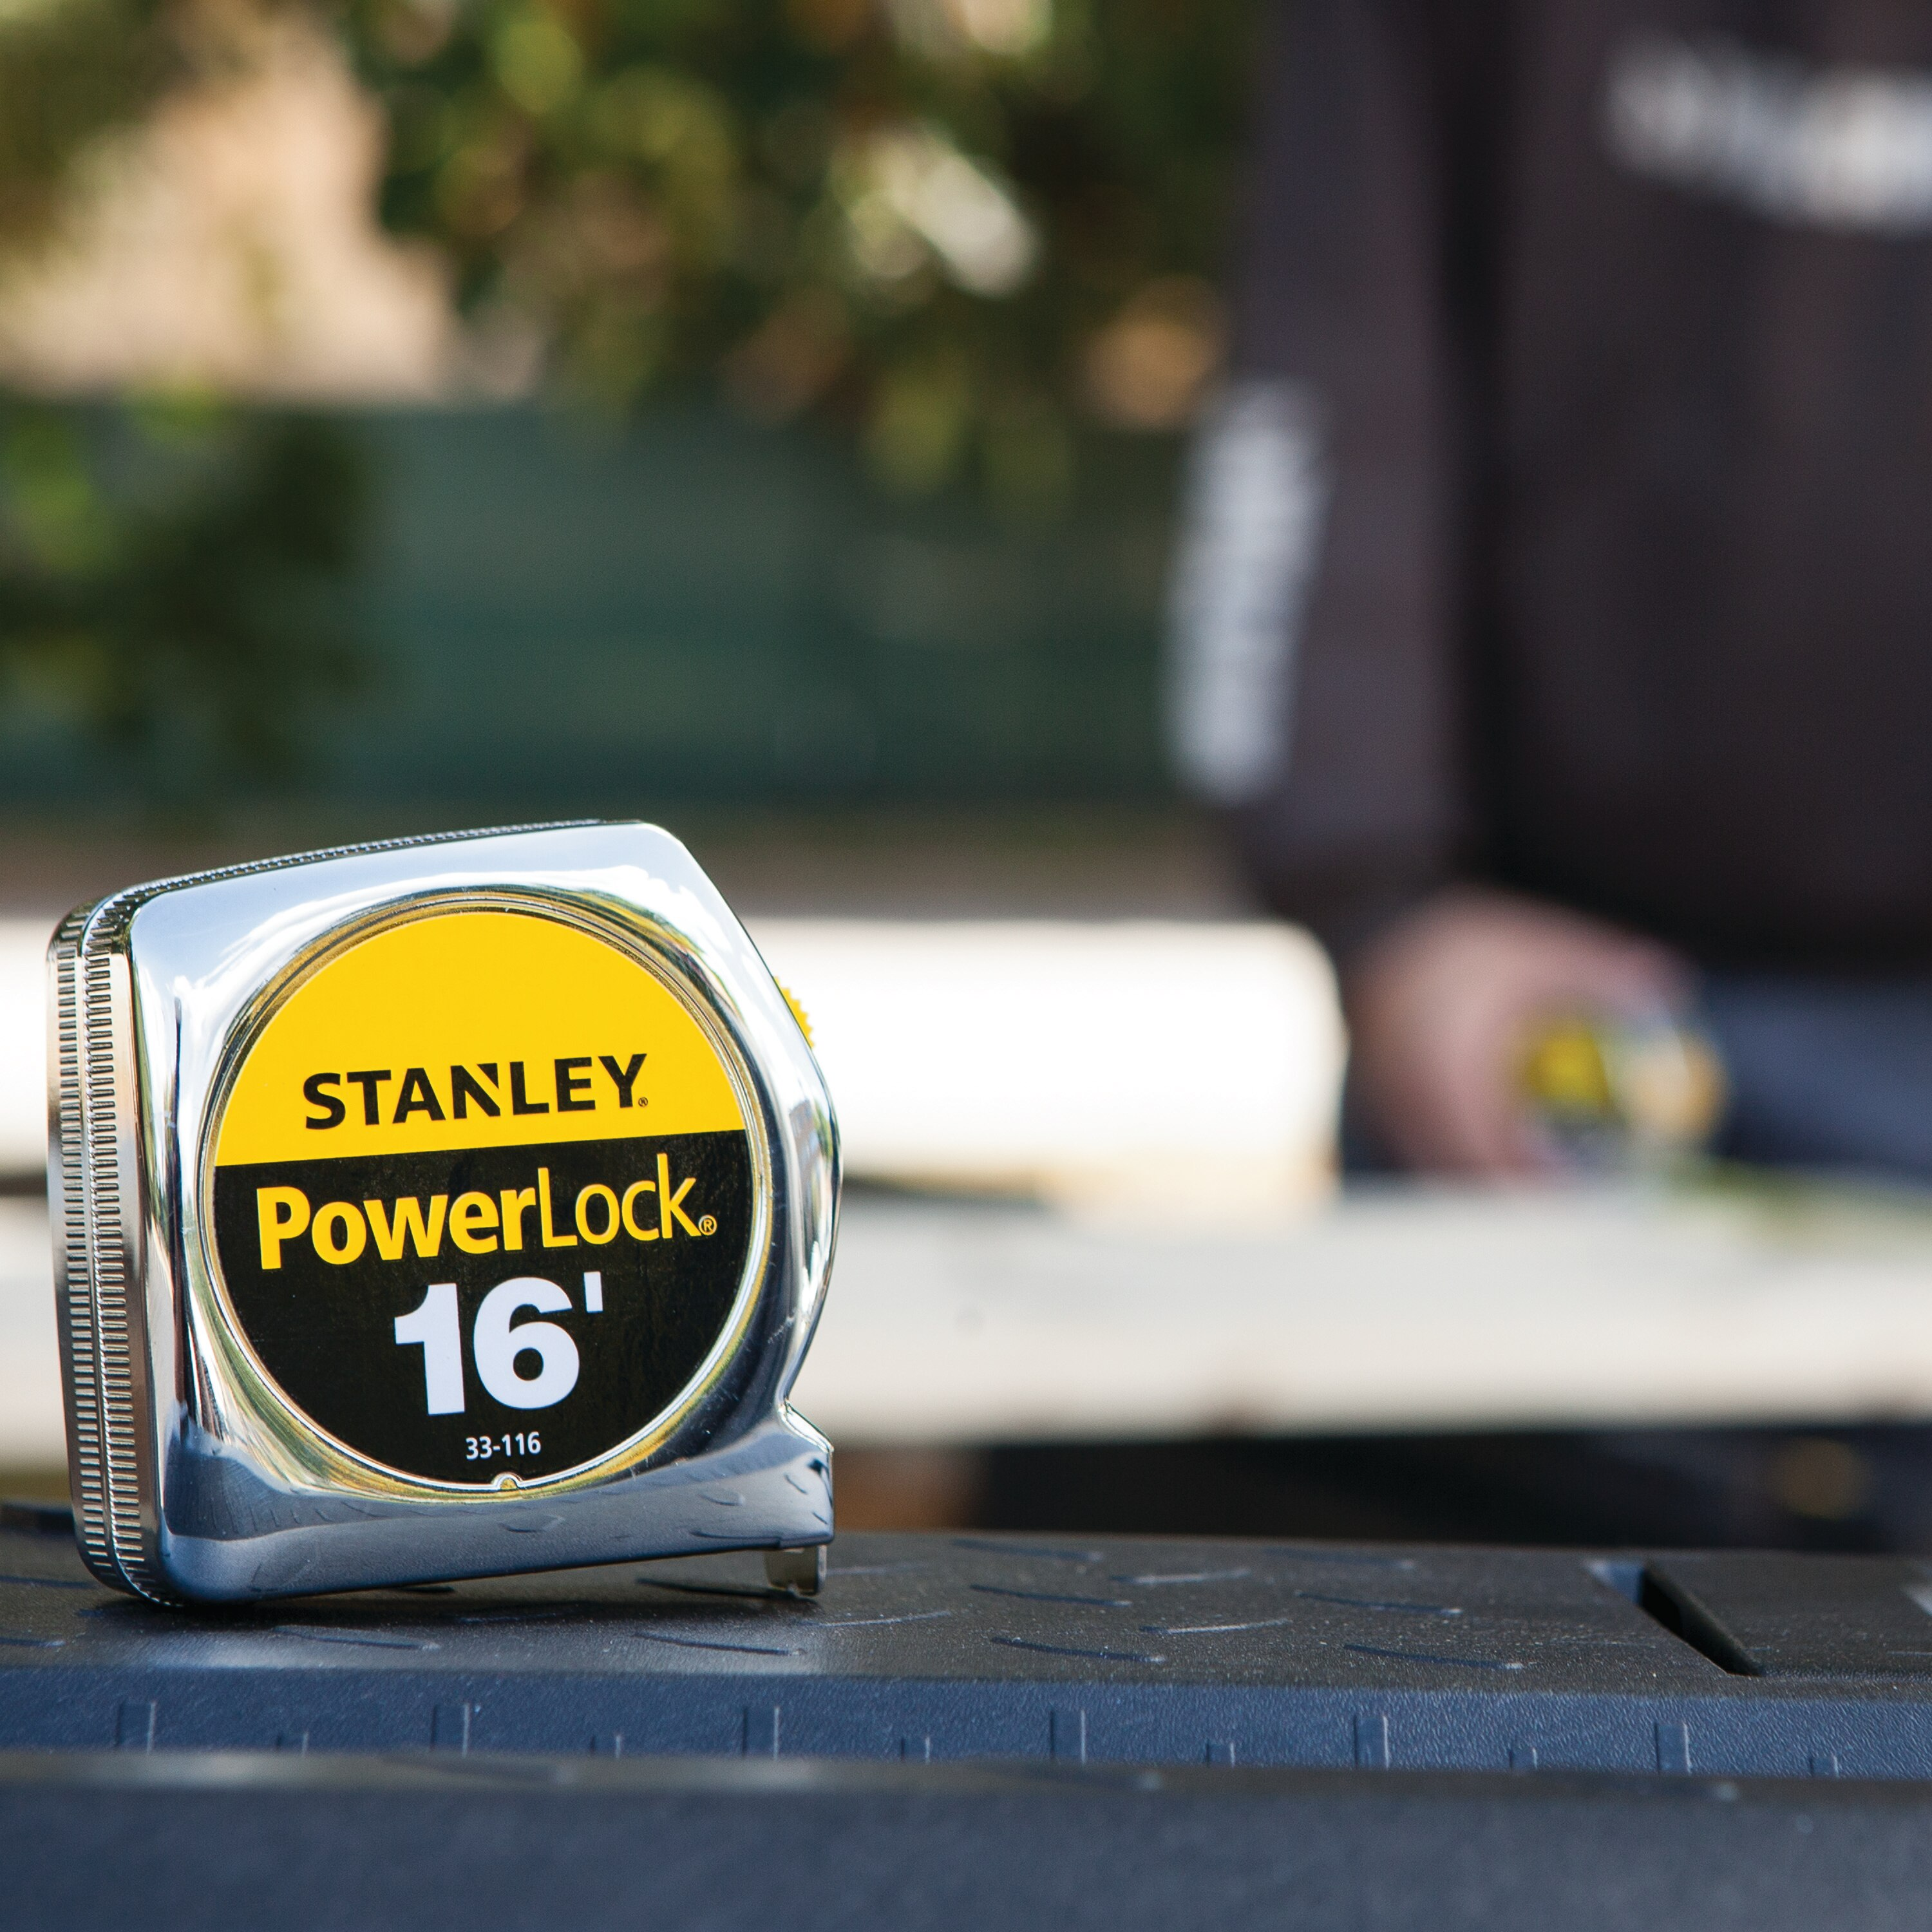 Stanley Tools - 16 ft PowerLock Tape Measure - 33-116